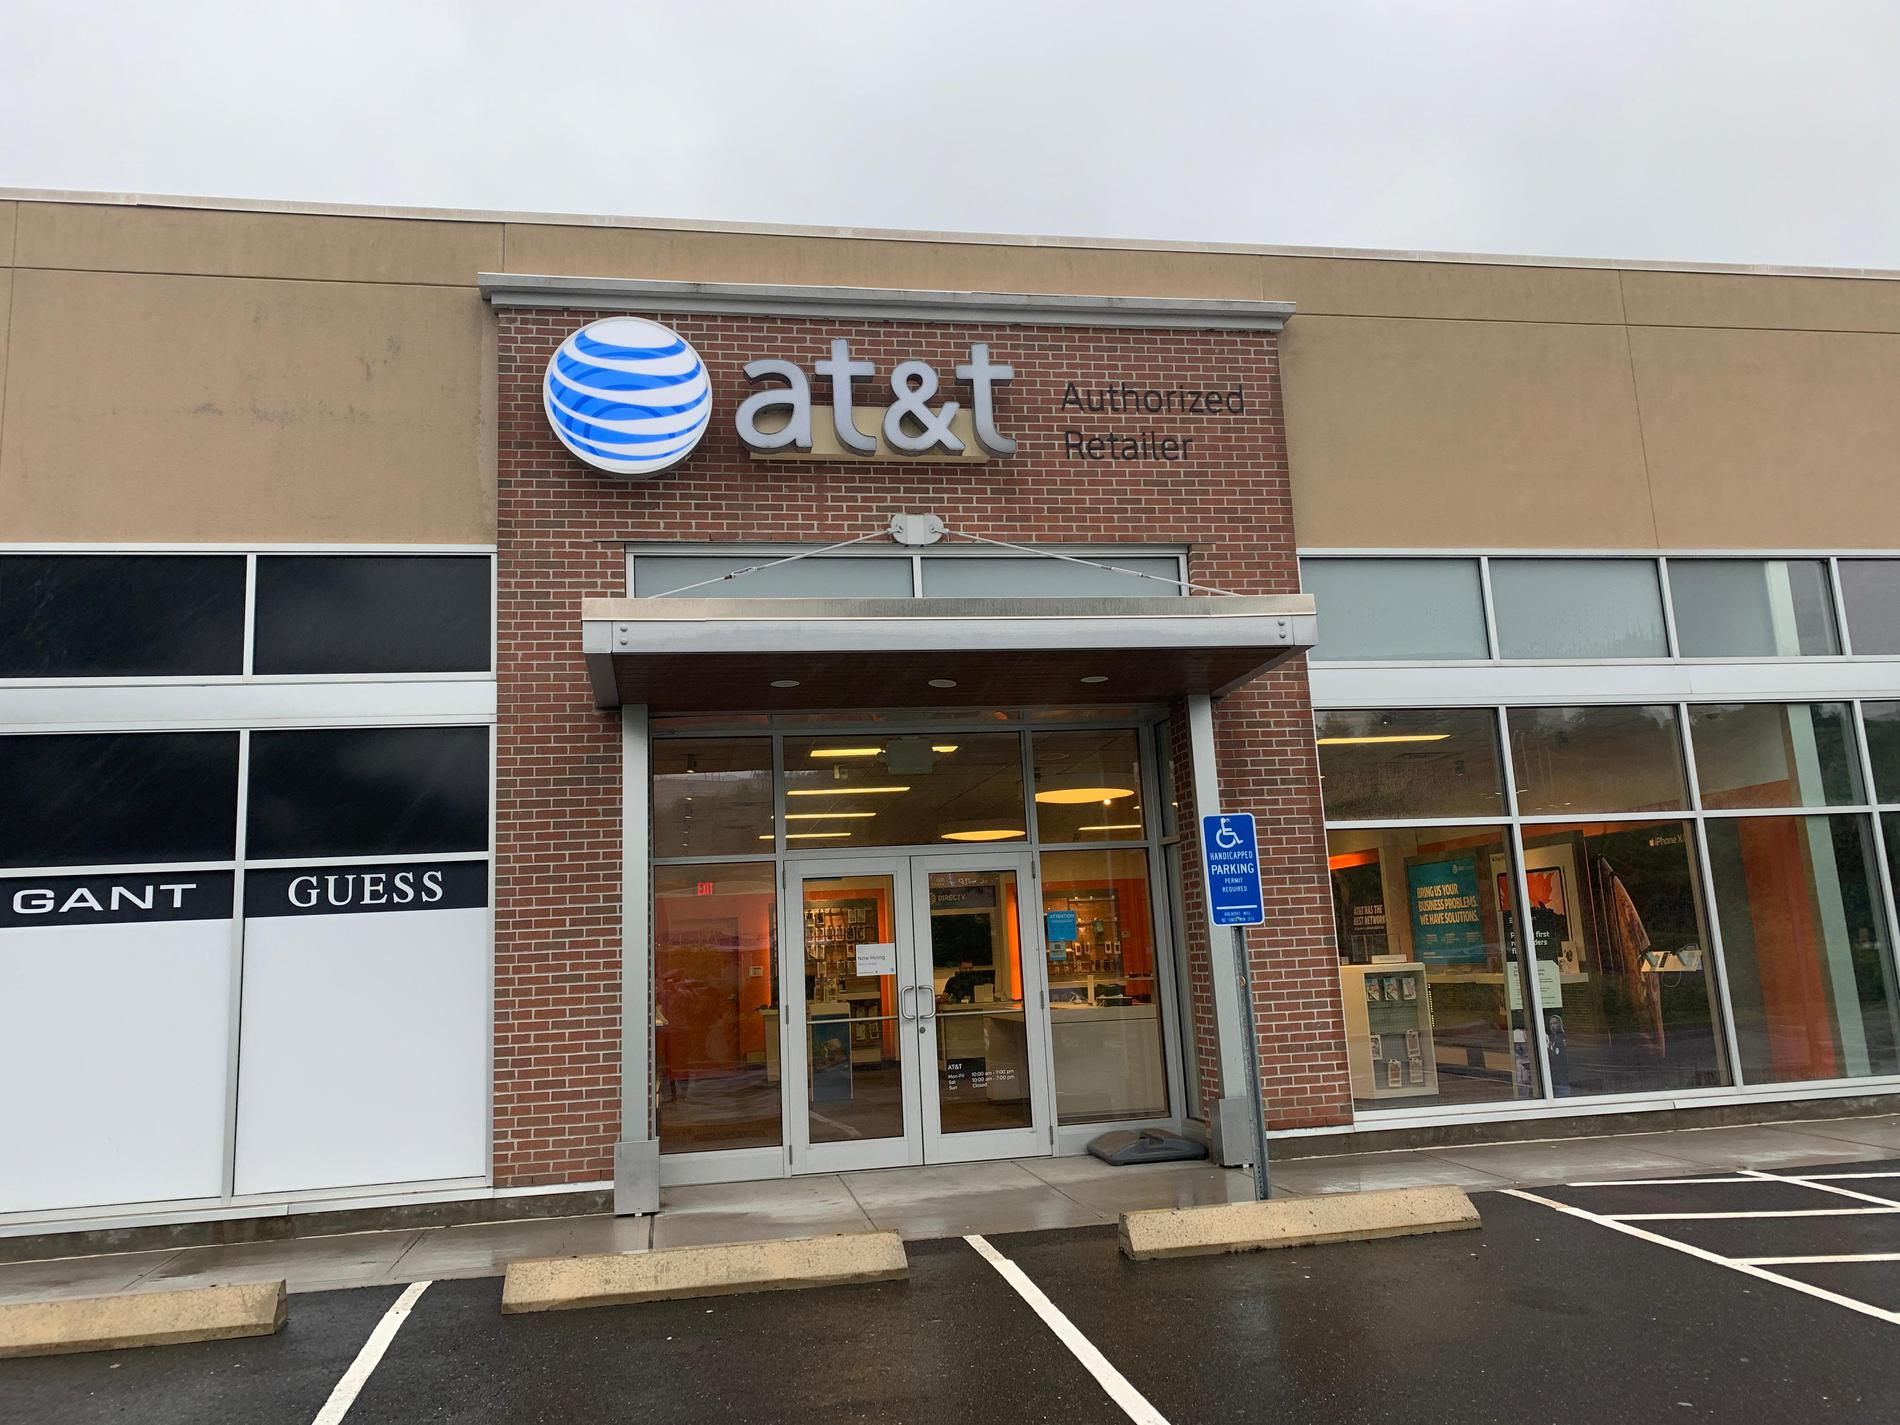 AT&T Store - Danbury - Danbury, CT – iPhone & Samsung Deals! on towson town center mall map, castleton square mall map, white marsh mall map, fashion place mall map, north east mall map, west county mall map, century iii mall mall map, north point mall map, carolina place mall map, enfield square mall map, mall of louisiana mall map, scottsdale fashion square mall map, newport centre mall map, vintage faire mall map, eastridge mall map, pheasant lane mall map, smith haven mall map, augusta mall map,